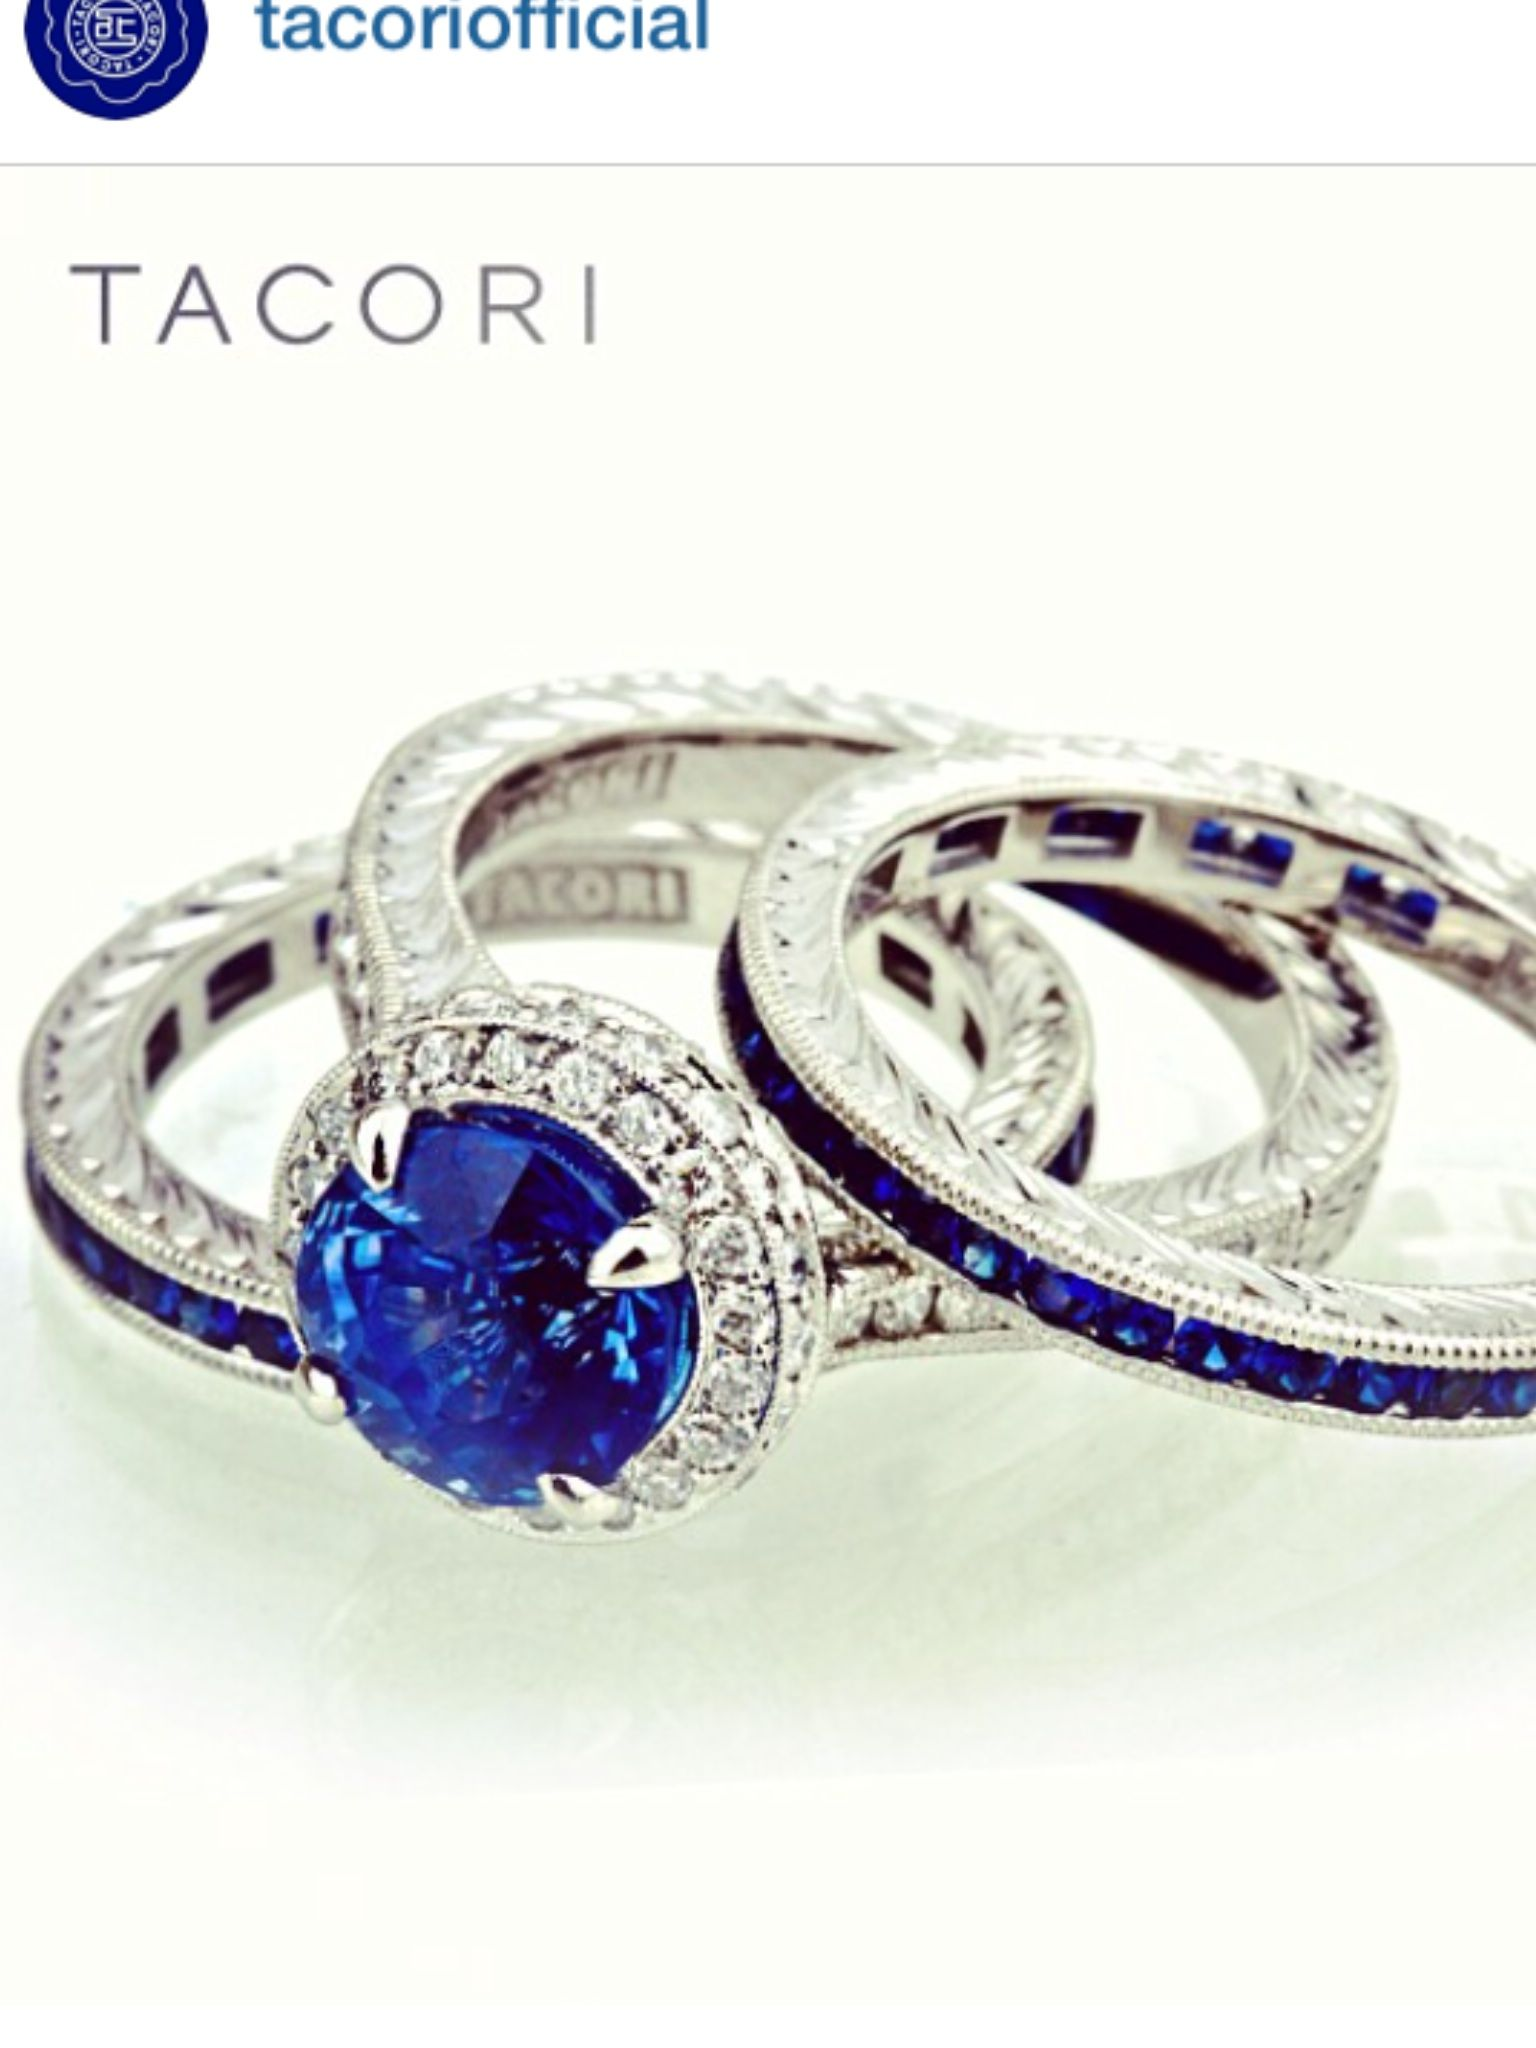 My dream ring, different designs I love